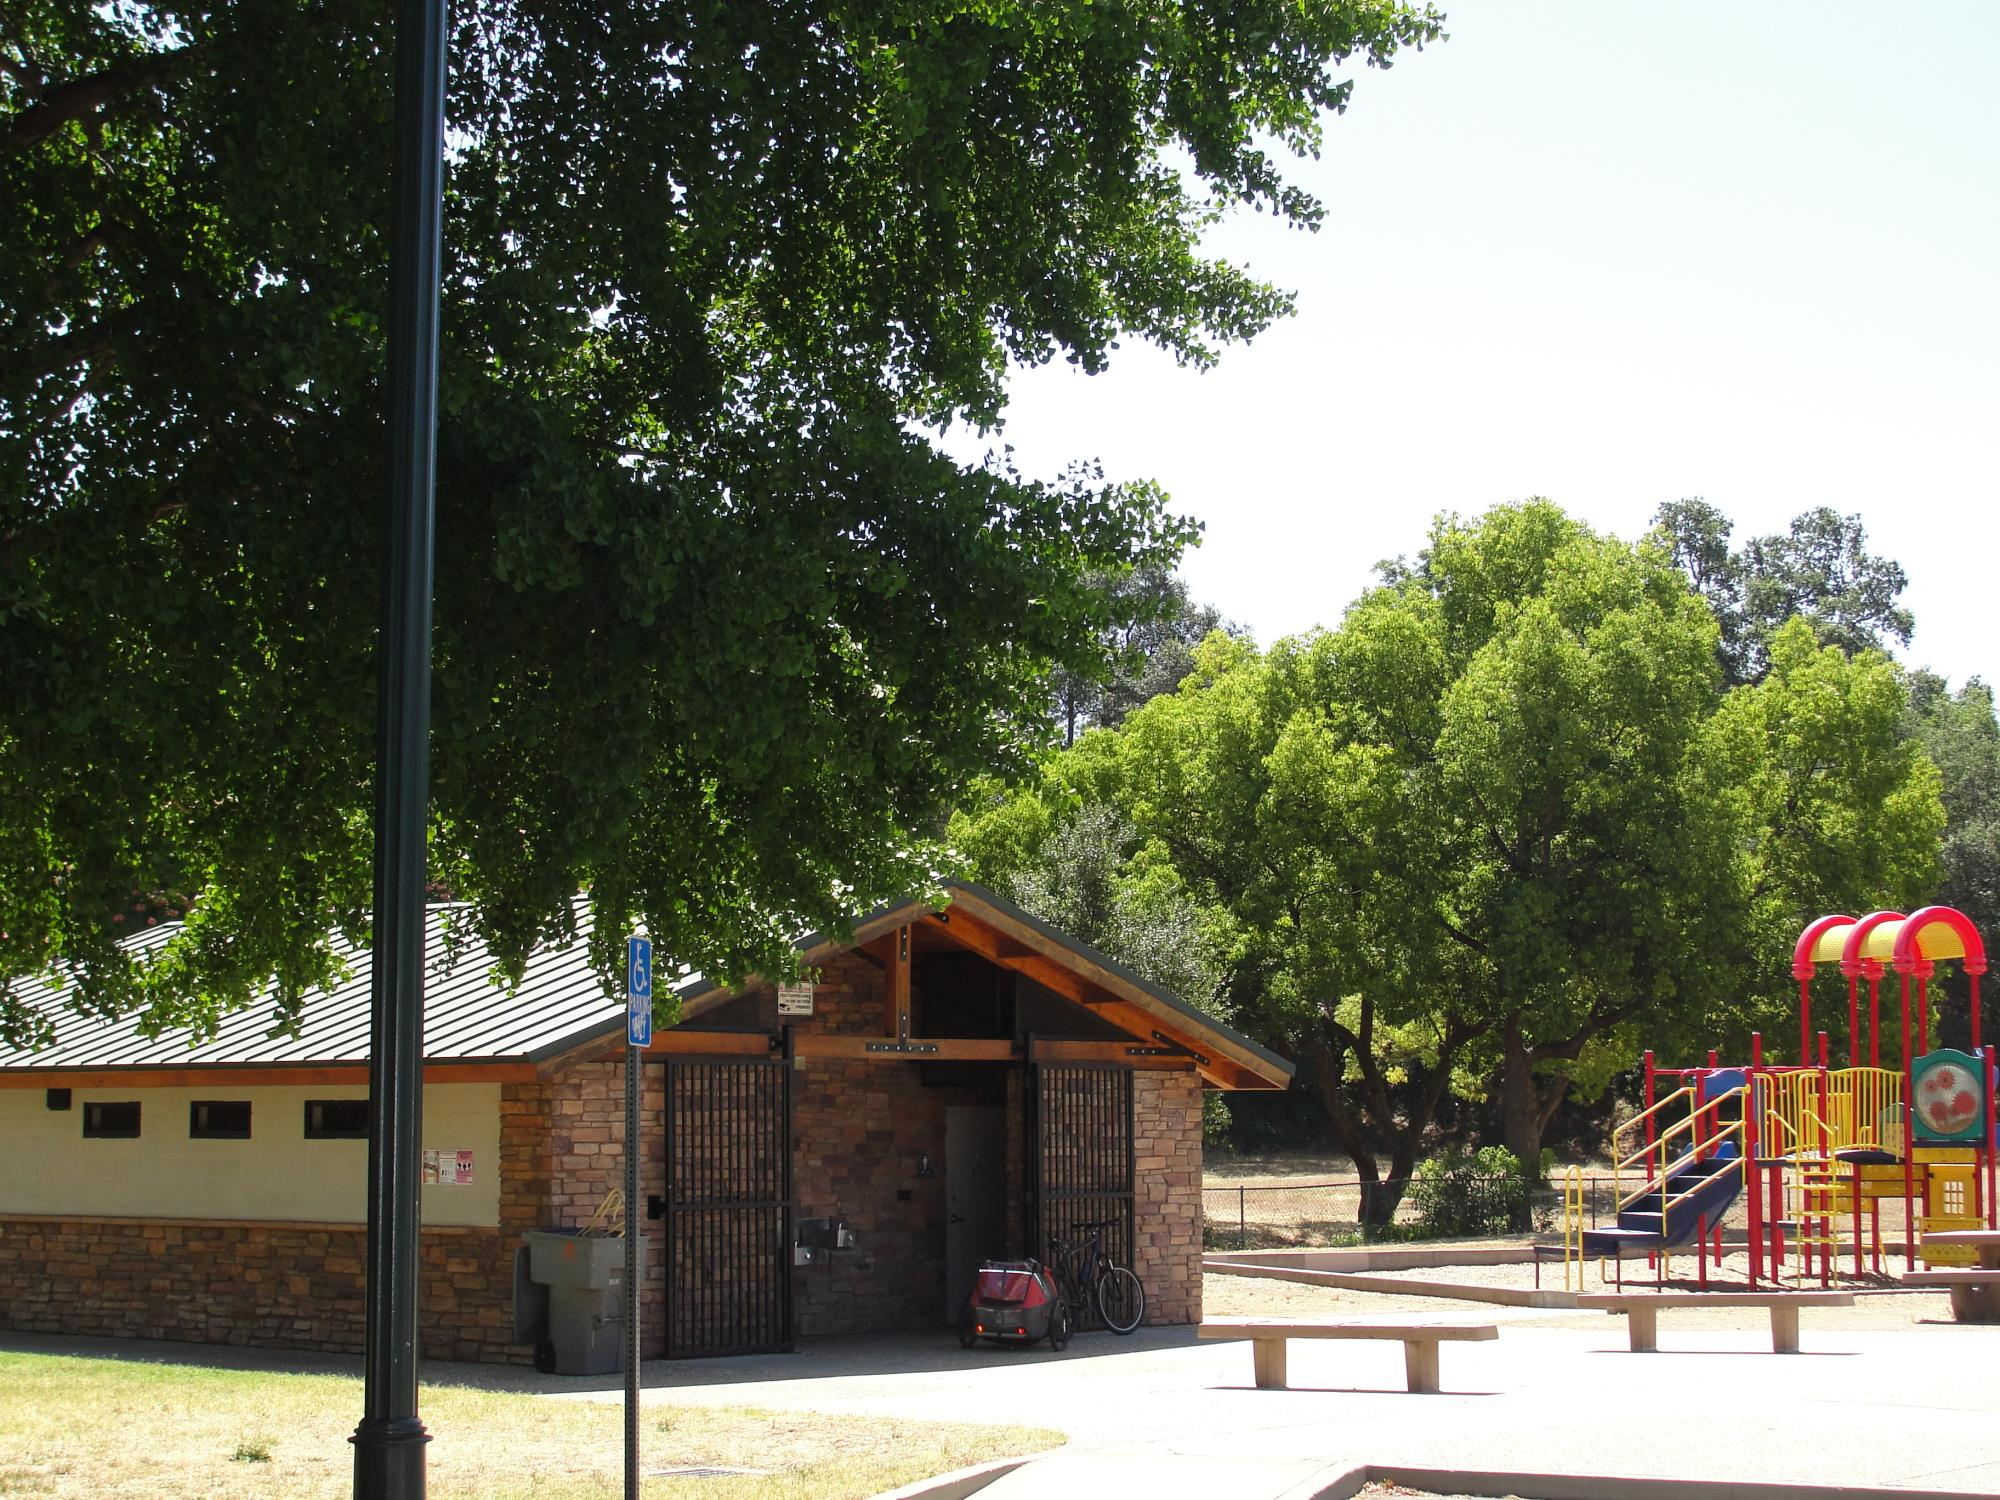 Hewitt Park Restrooms and playground